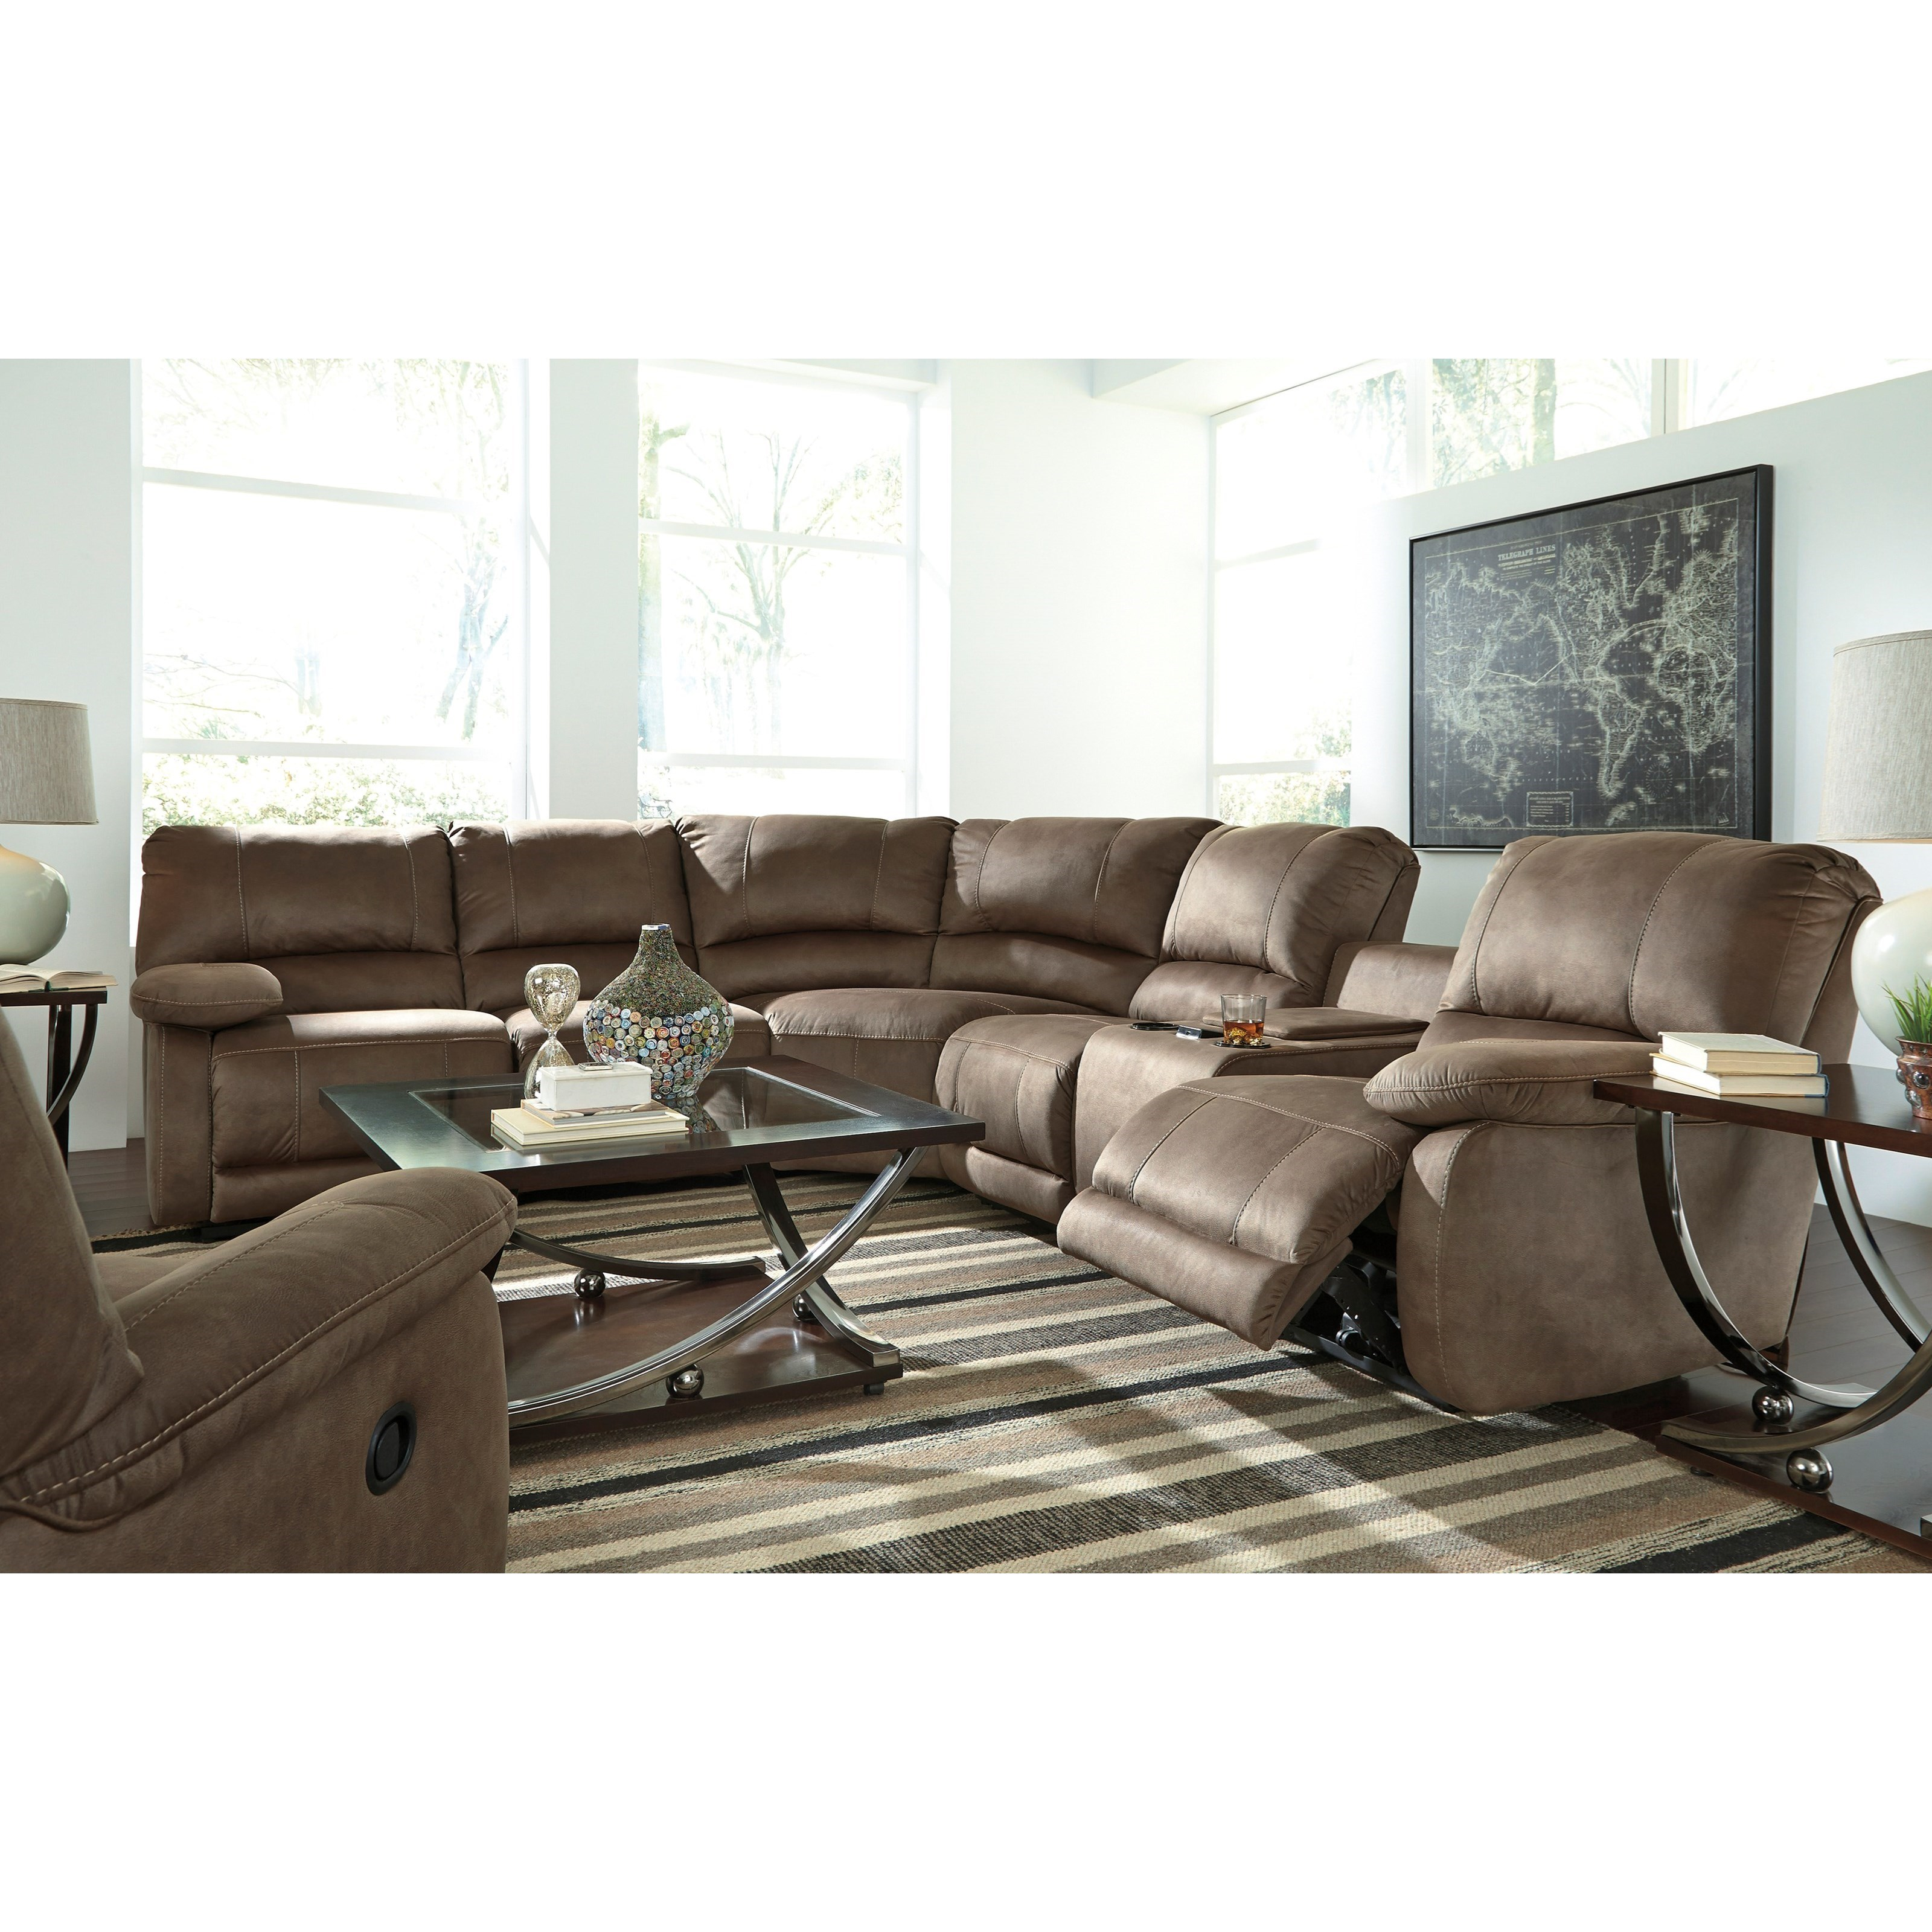 Signature Design by Ashley Seamus Reclining Living Room Group - Item Number: 41800 Living Room Group 1